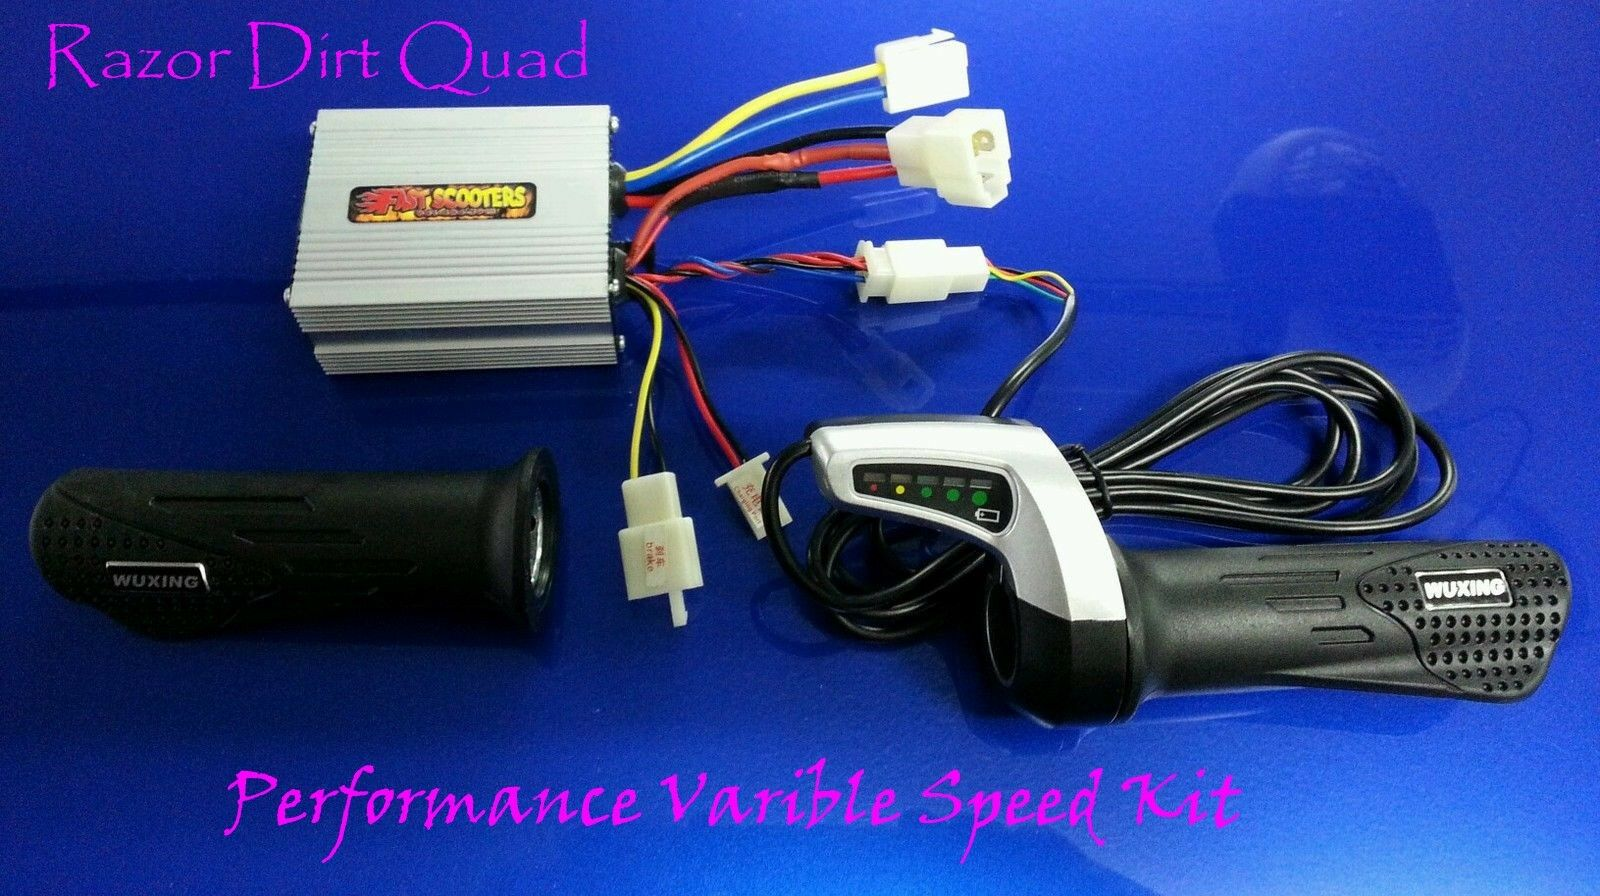 Razor electrical kit- Dirt Quad- Variable Speed Kit -controller and thredtle